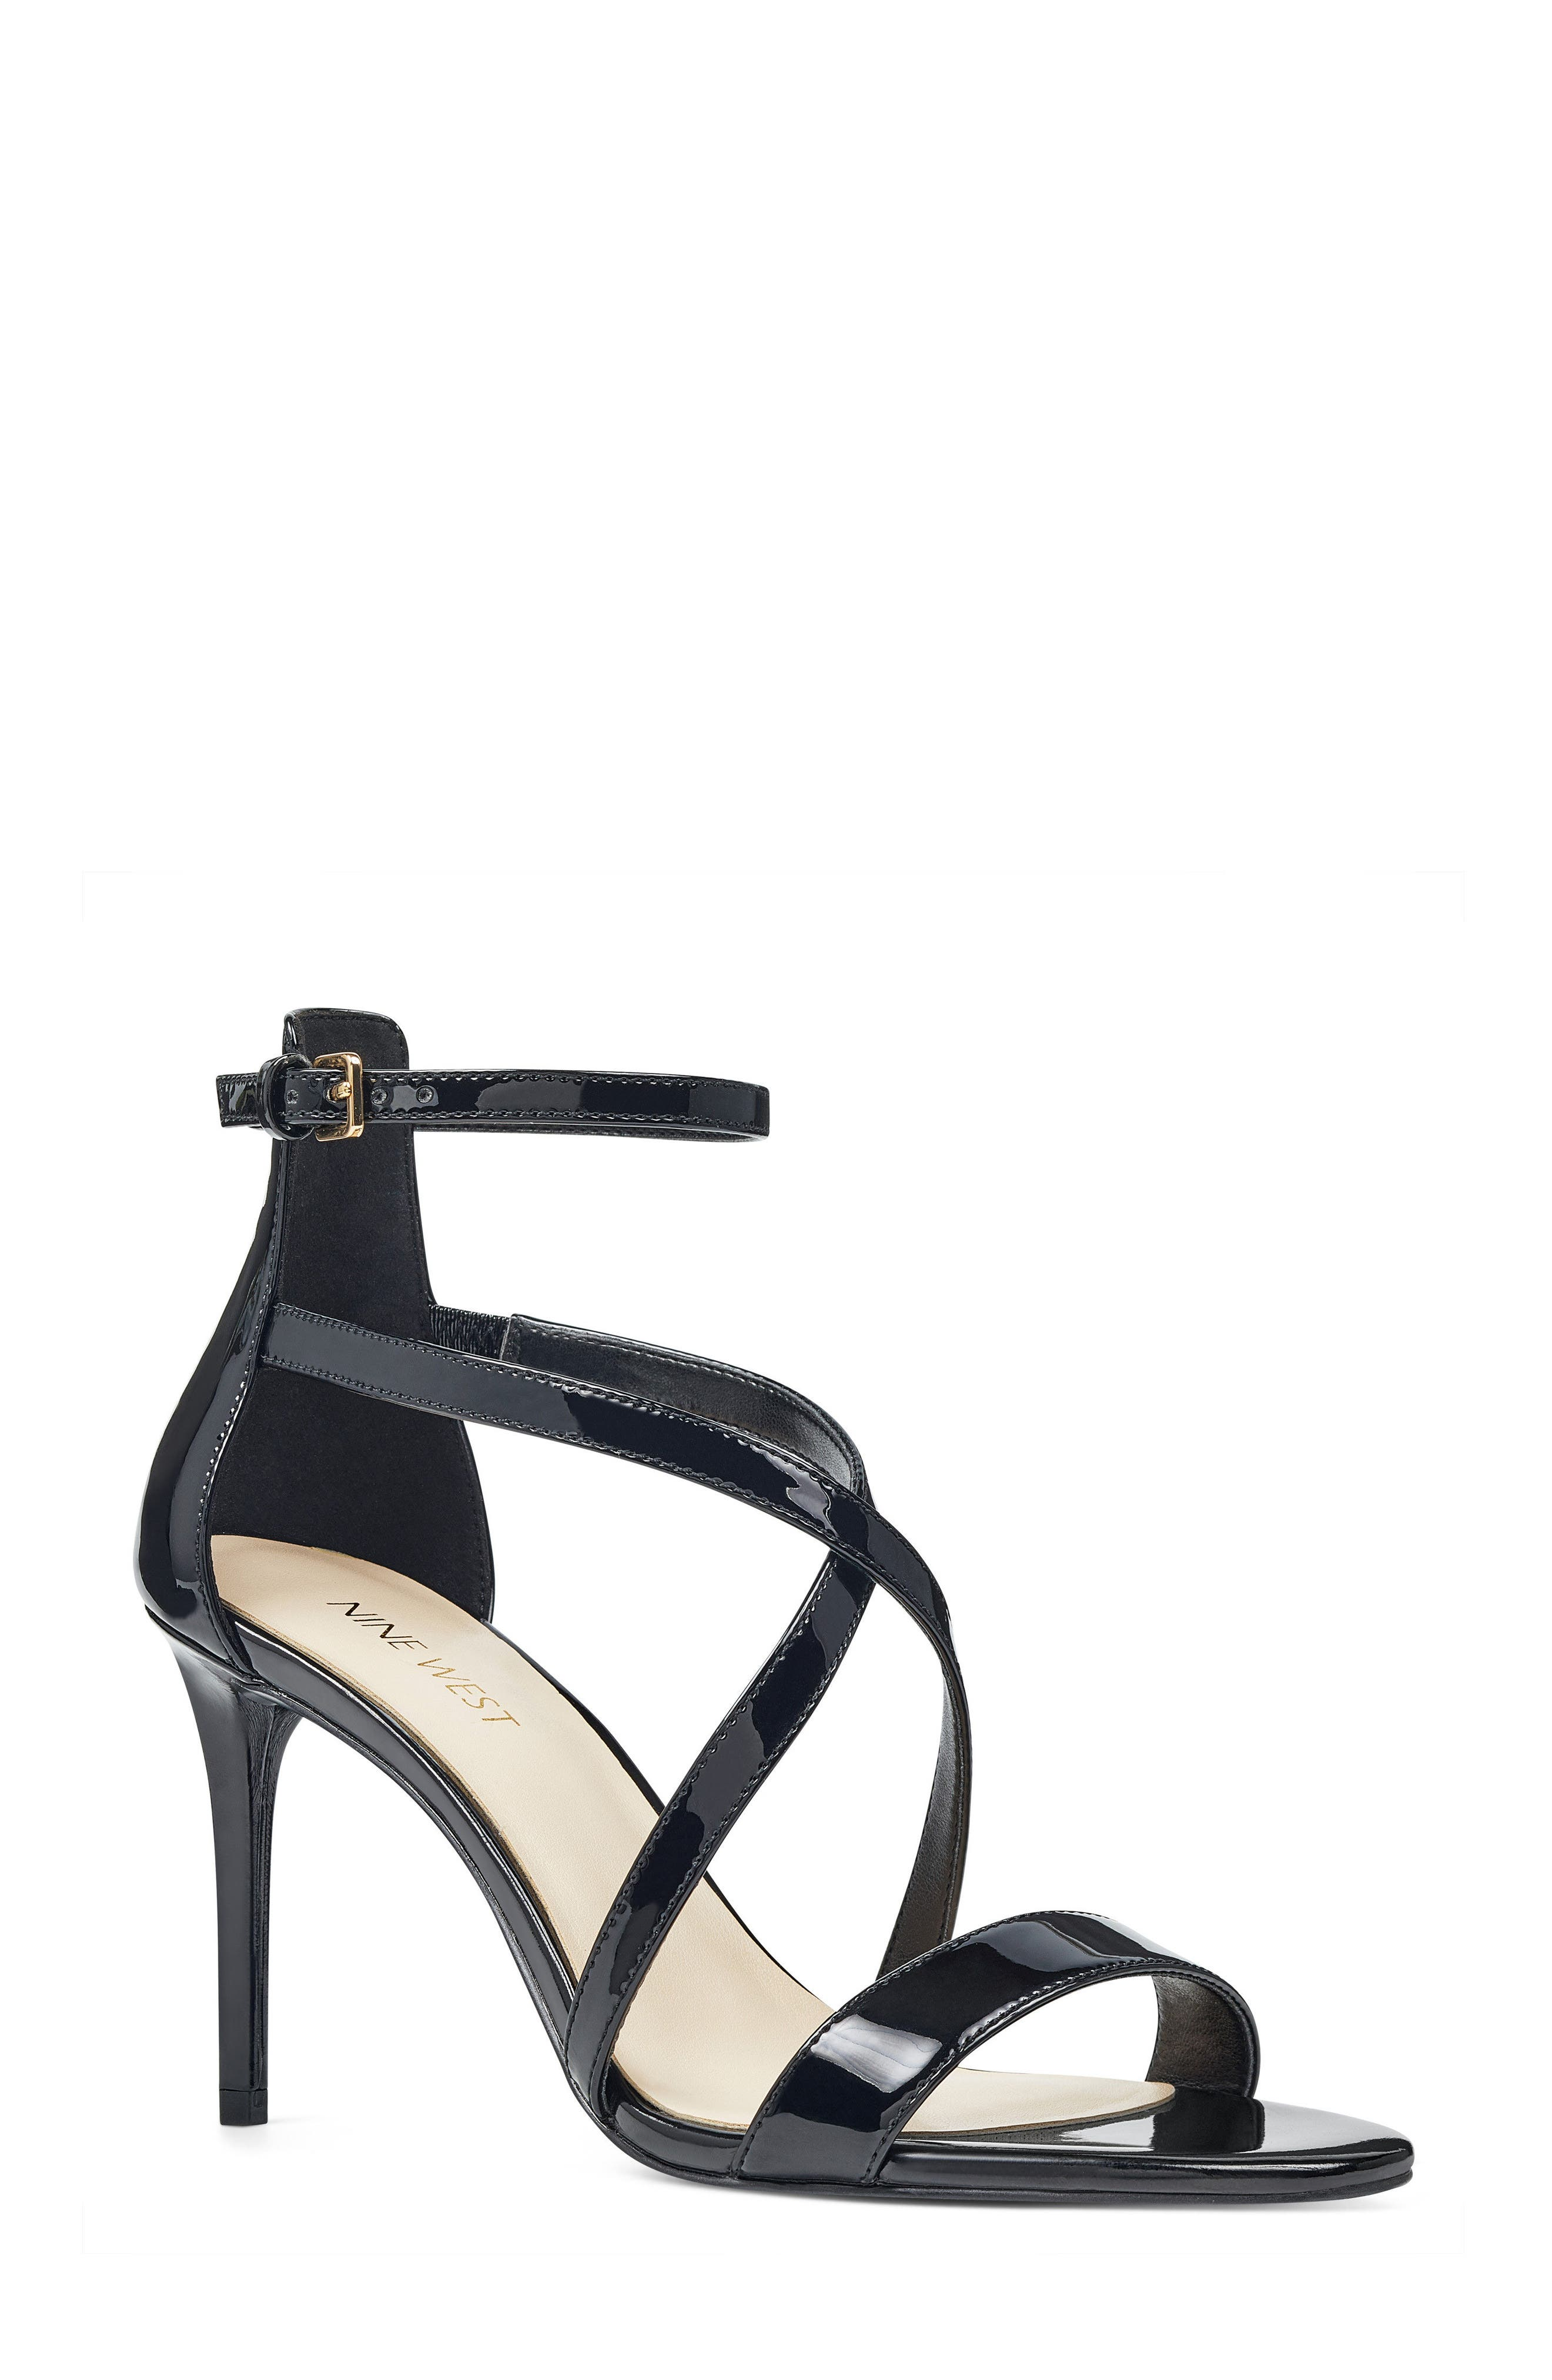 NINE WEST,                             Retail Therapy Strappy Sandal,                             Main thumbnail 1, color,                             001